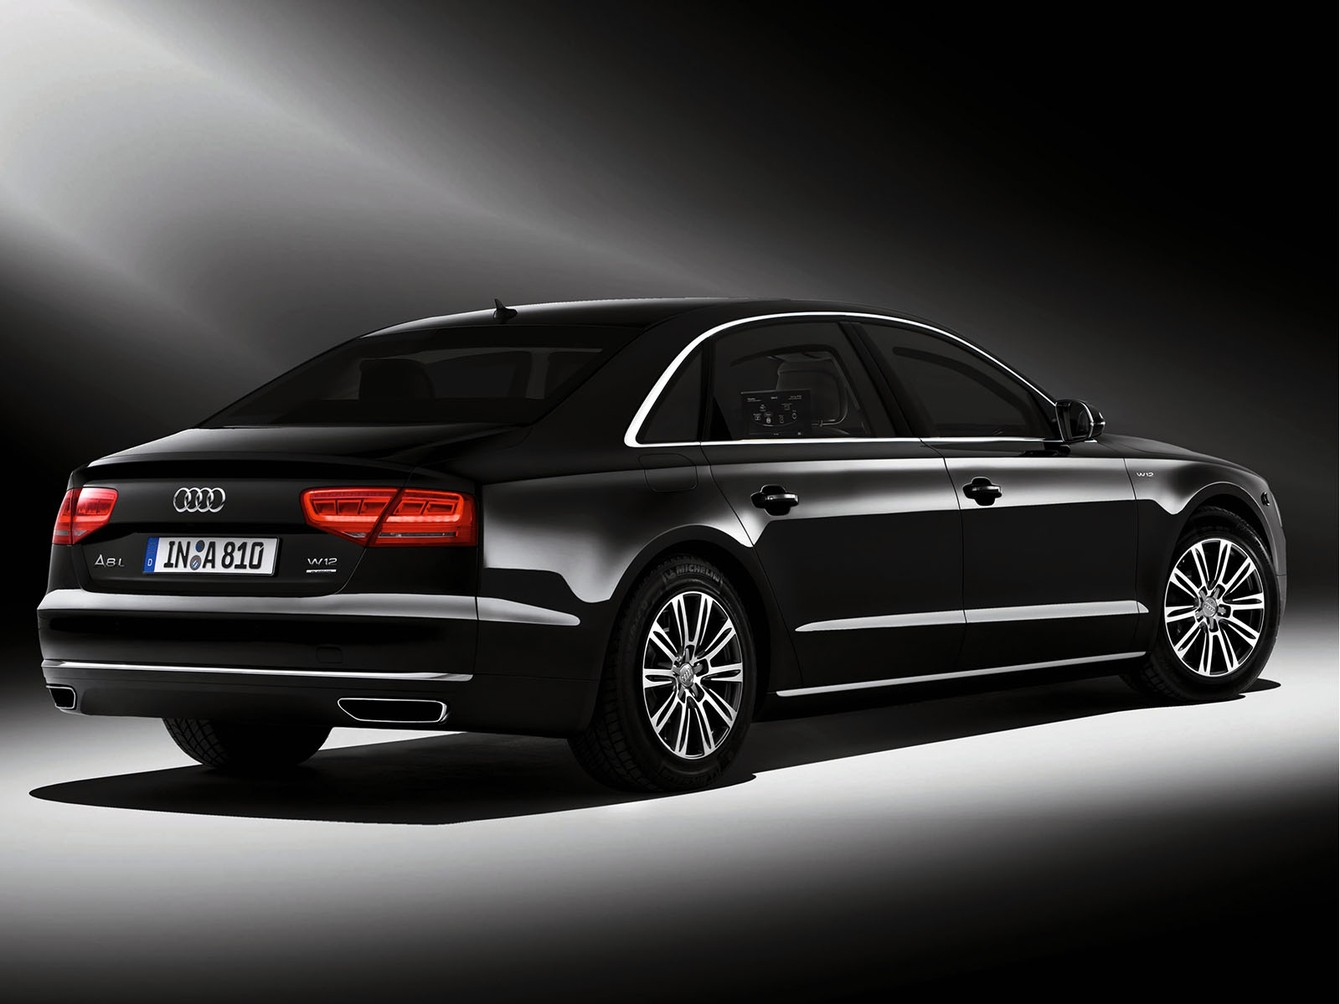 2019 Audi A8 L Security photo - 2